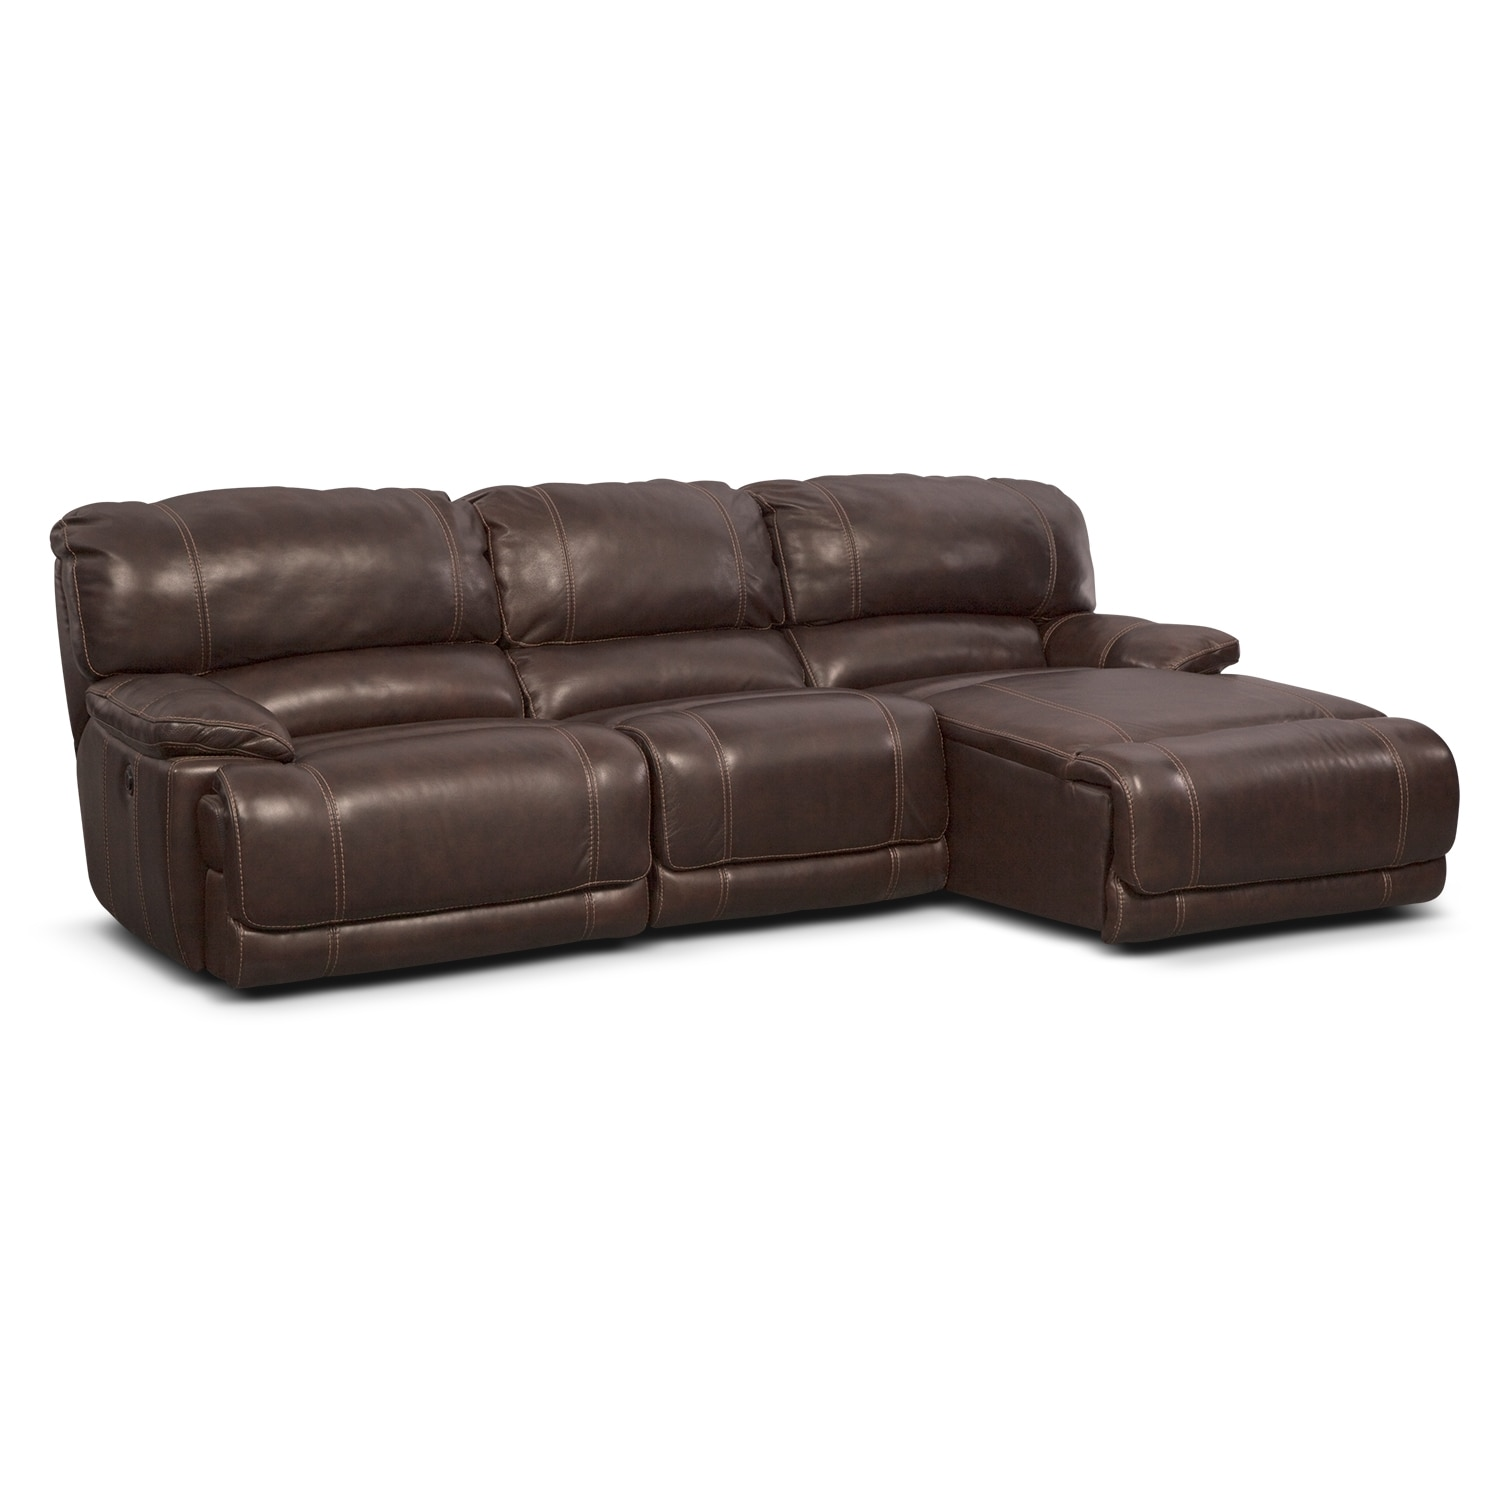 St malo 3 piece power reclining sectional with right for Chaise and recliner